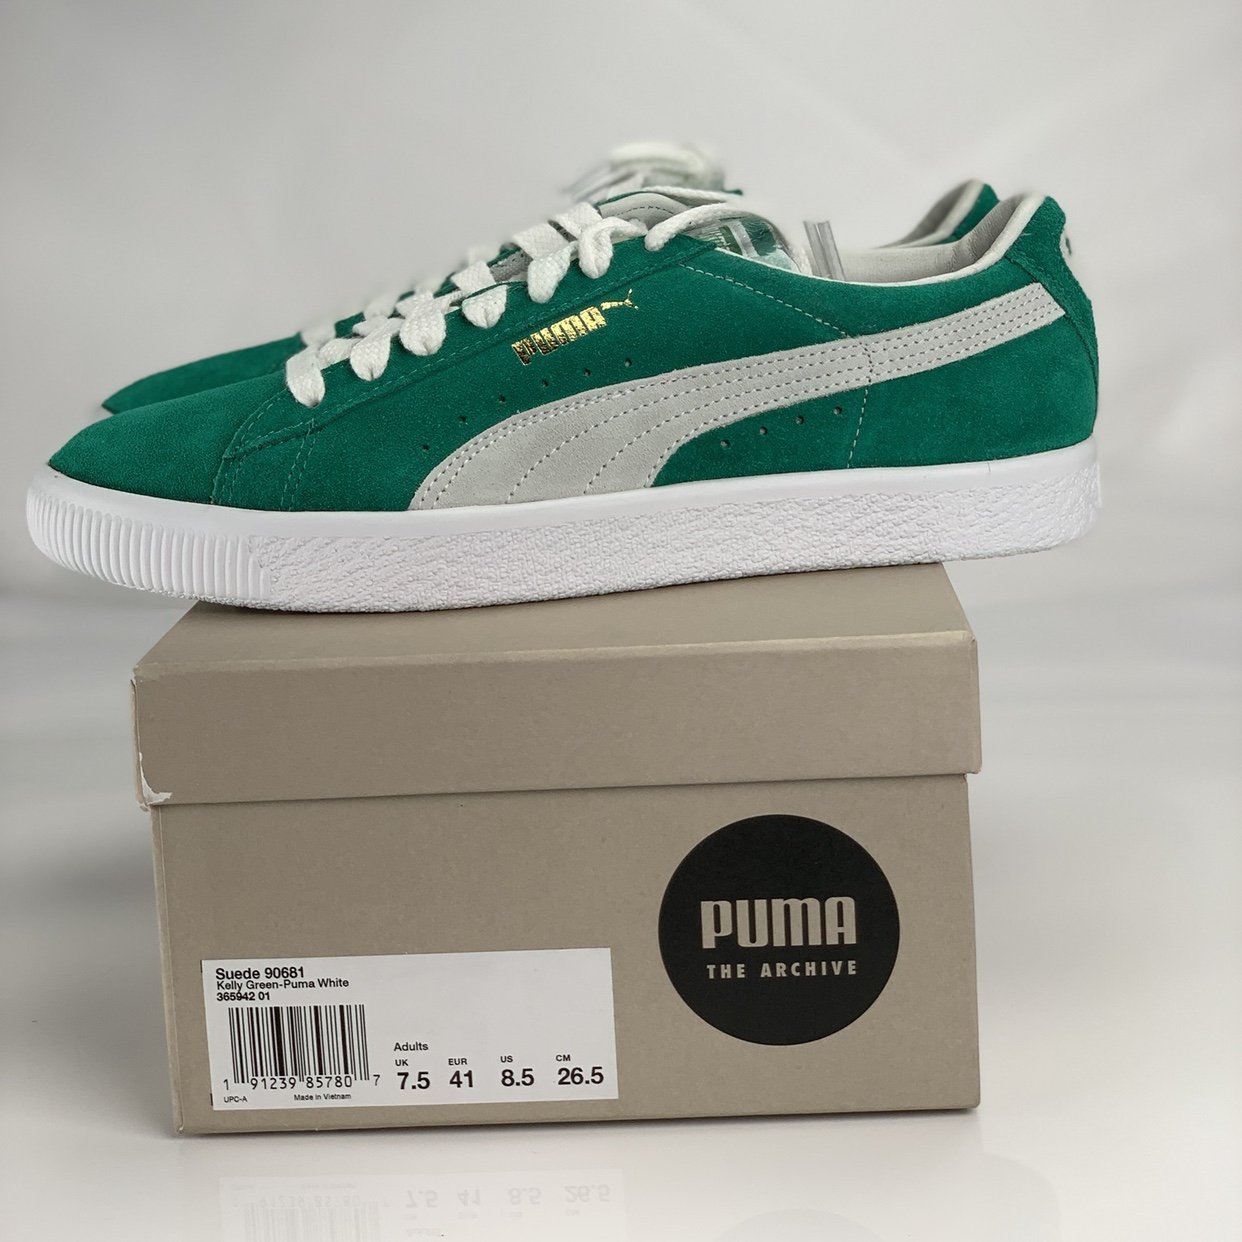 sneakers for cheap 93c9f ed4e5 For sale is a pair of Puma suede 90681 in Kelly... - Depop